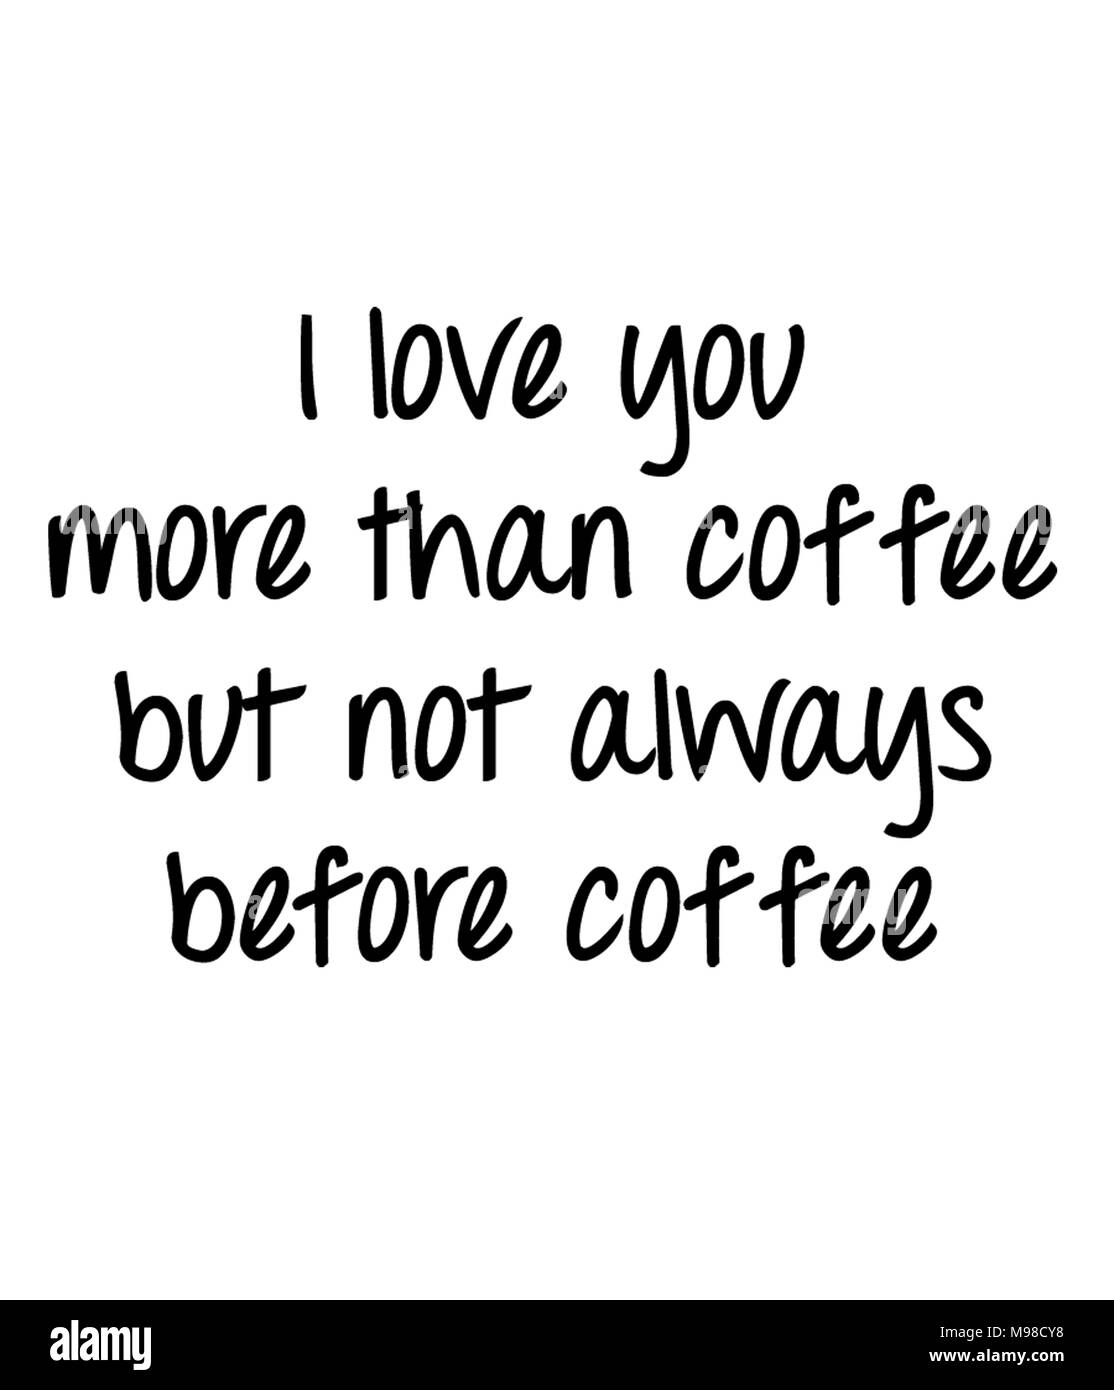 I Love You More Than Coffee But not Always Before Coffee - Stock Image